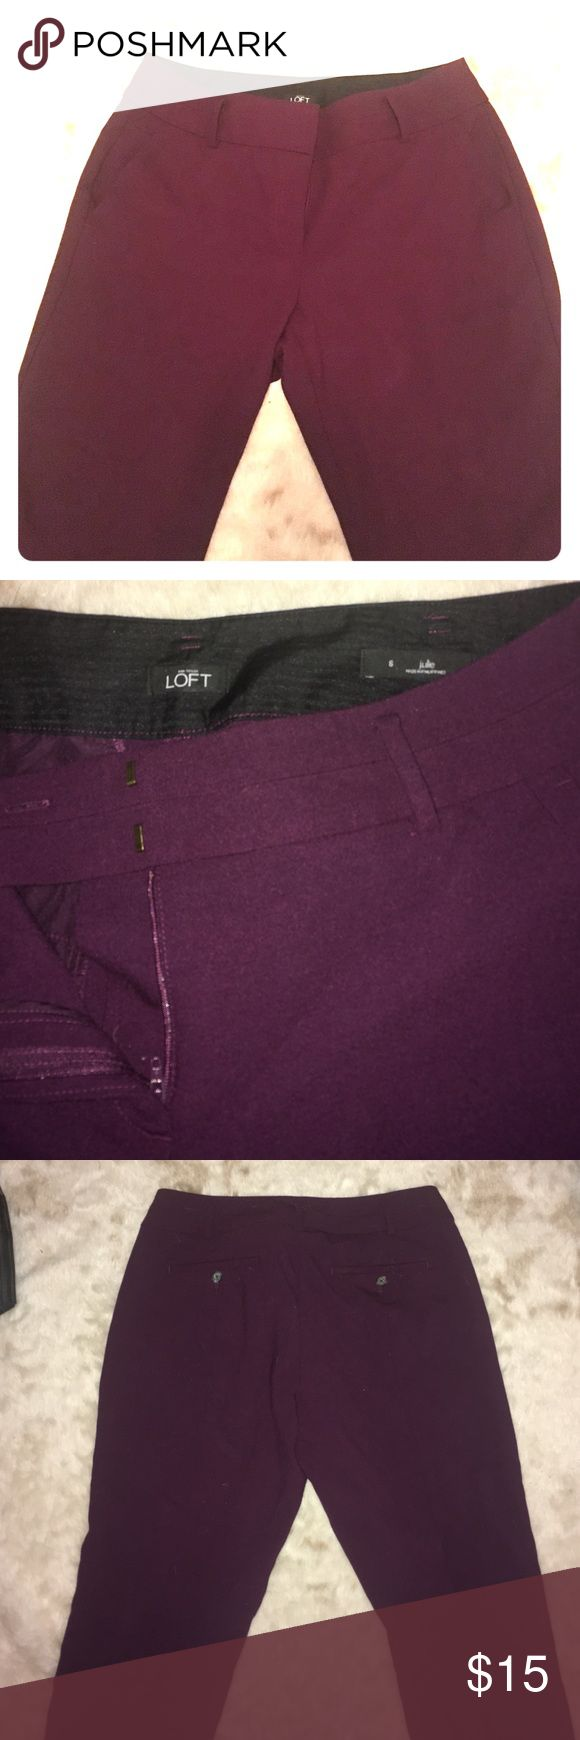 Ann Taylor Loft Julie Plum pants size 6 Plum colored 44% wool dress pants. These pants say size 6 but fit around the waist size 8. The bottom is short ankle pant style. The name of the fit is Julie by Ann Taylor loft. I've worn twice too big around the stomach and too short for ankle pants on me. Will provide measurements if needed. LOFT Pants Trousers